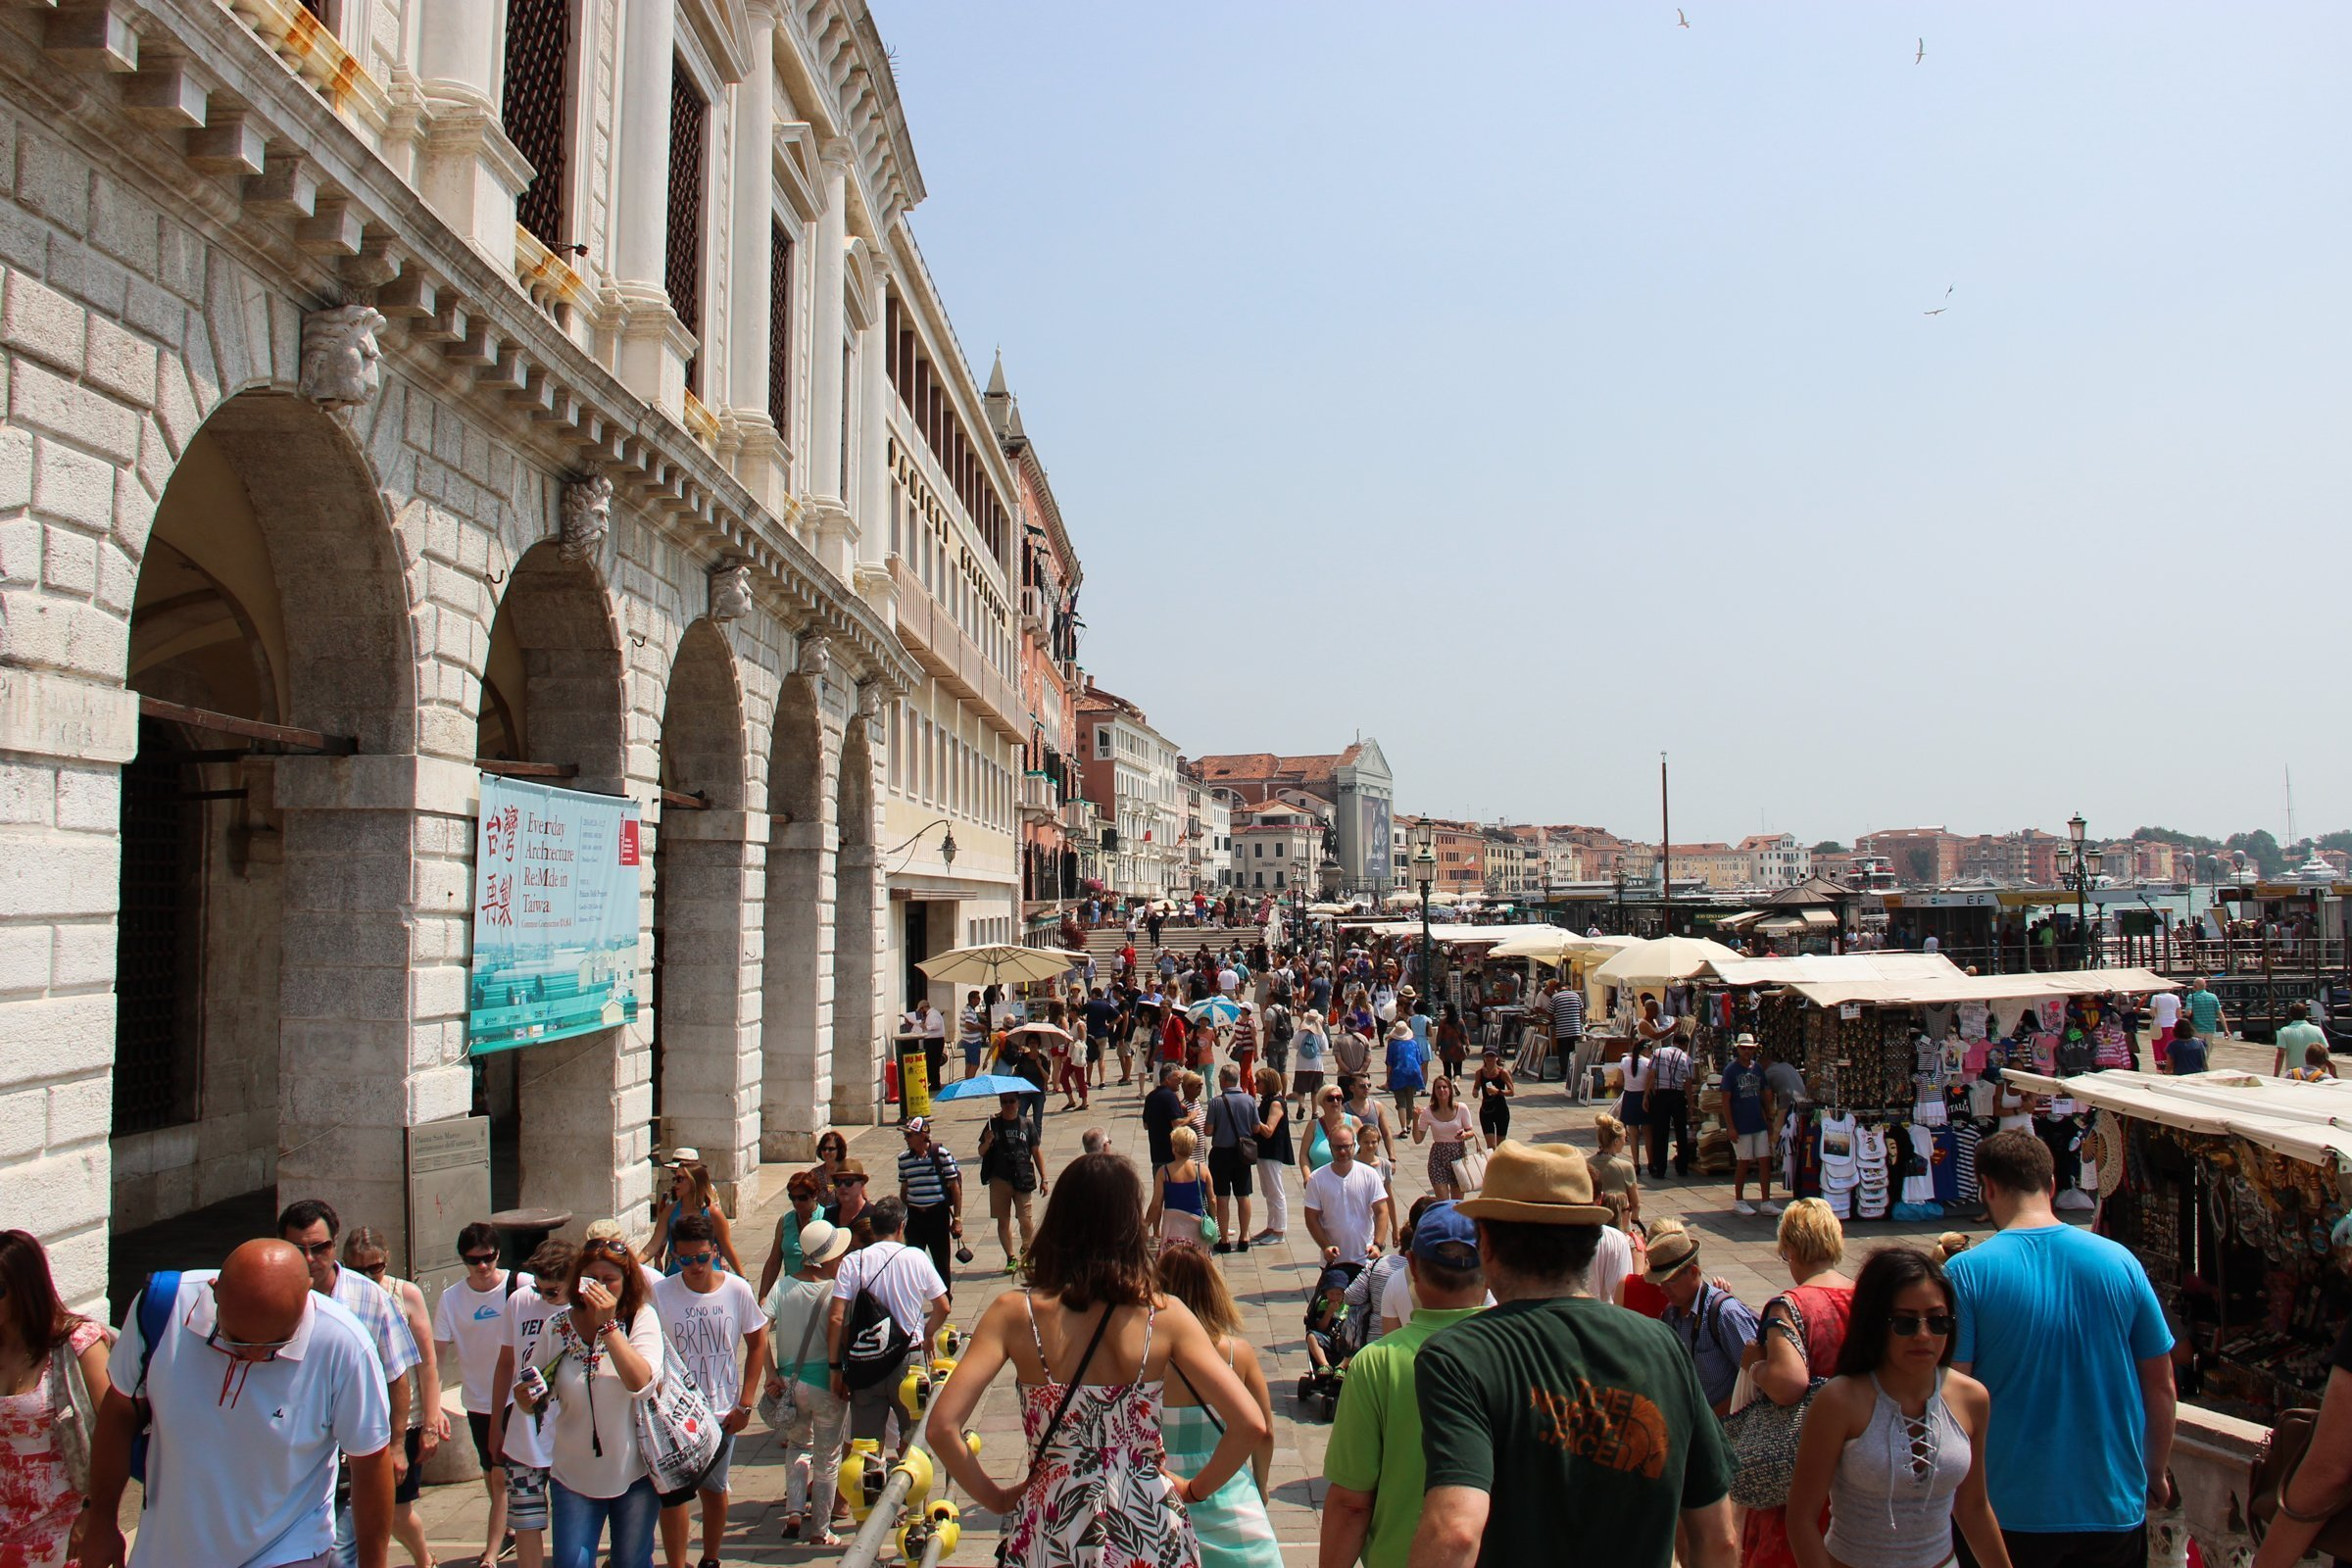 Crowds Of Tourists Near Arcade